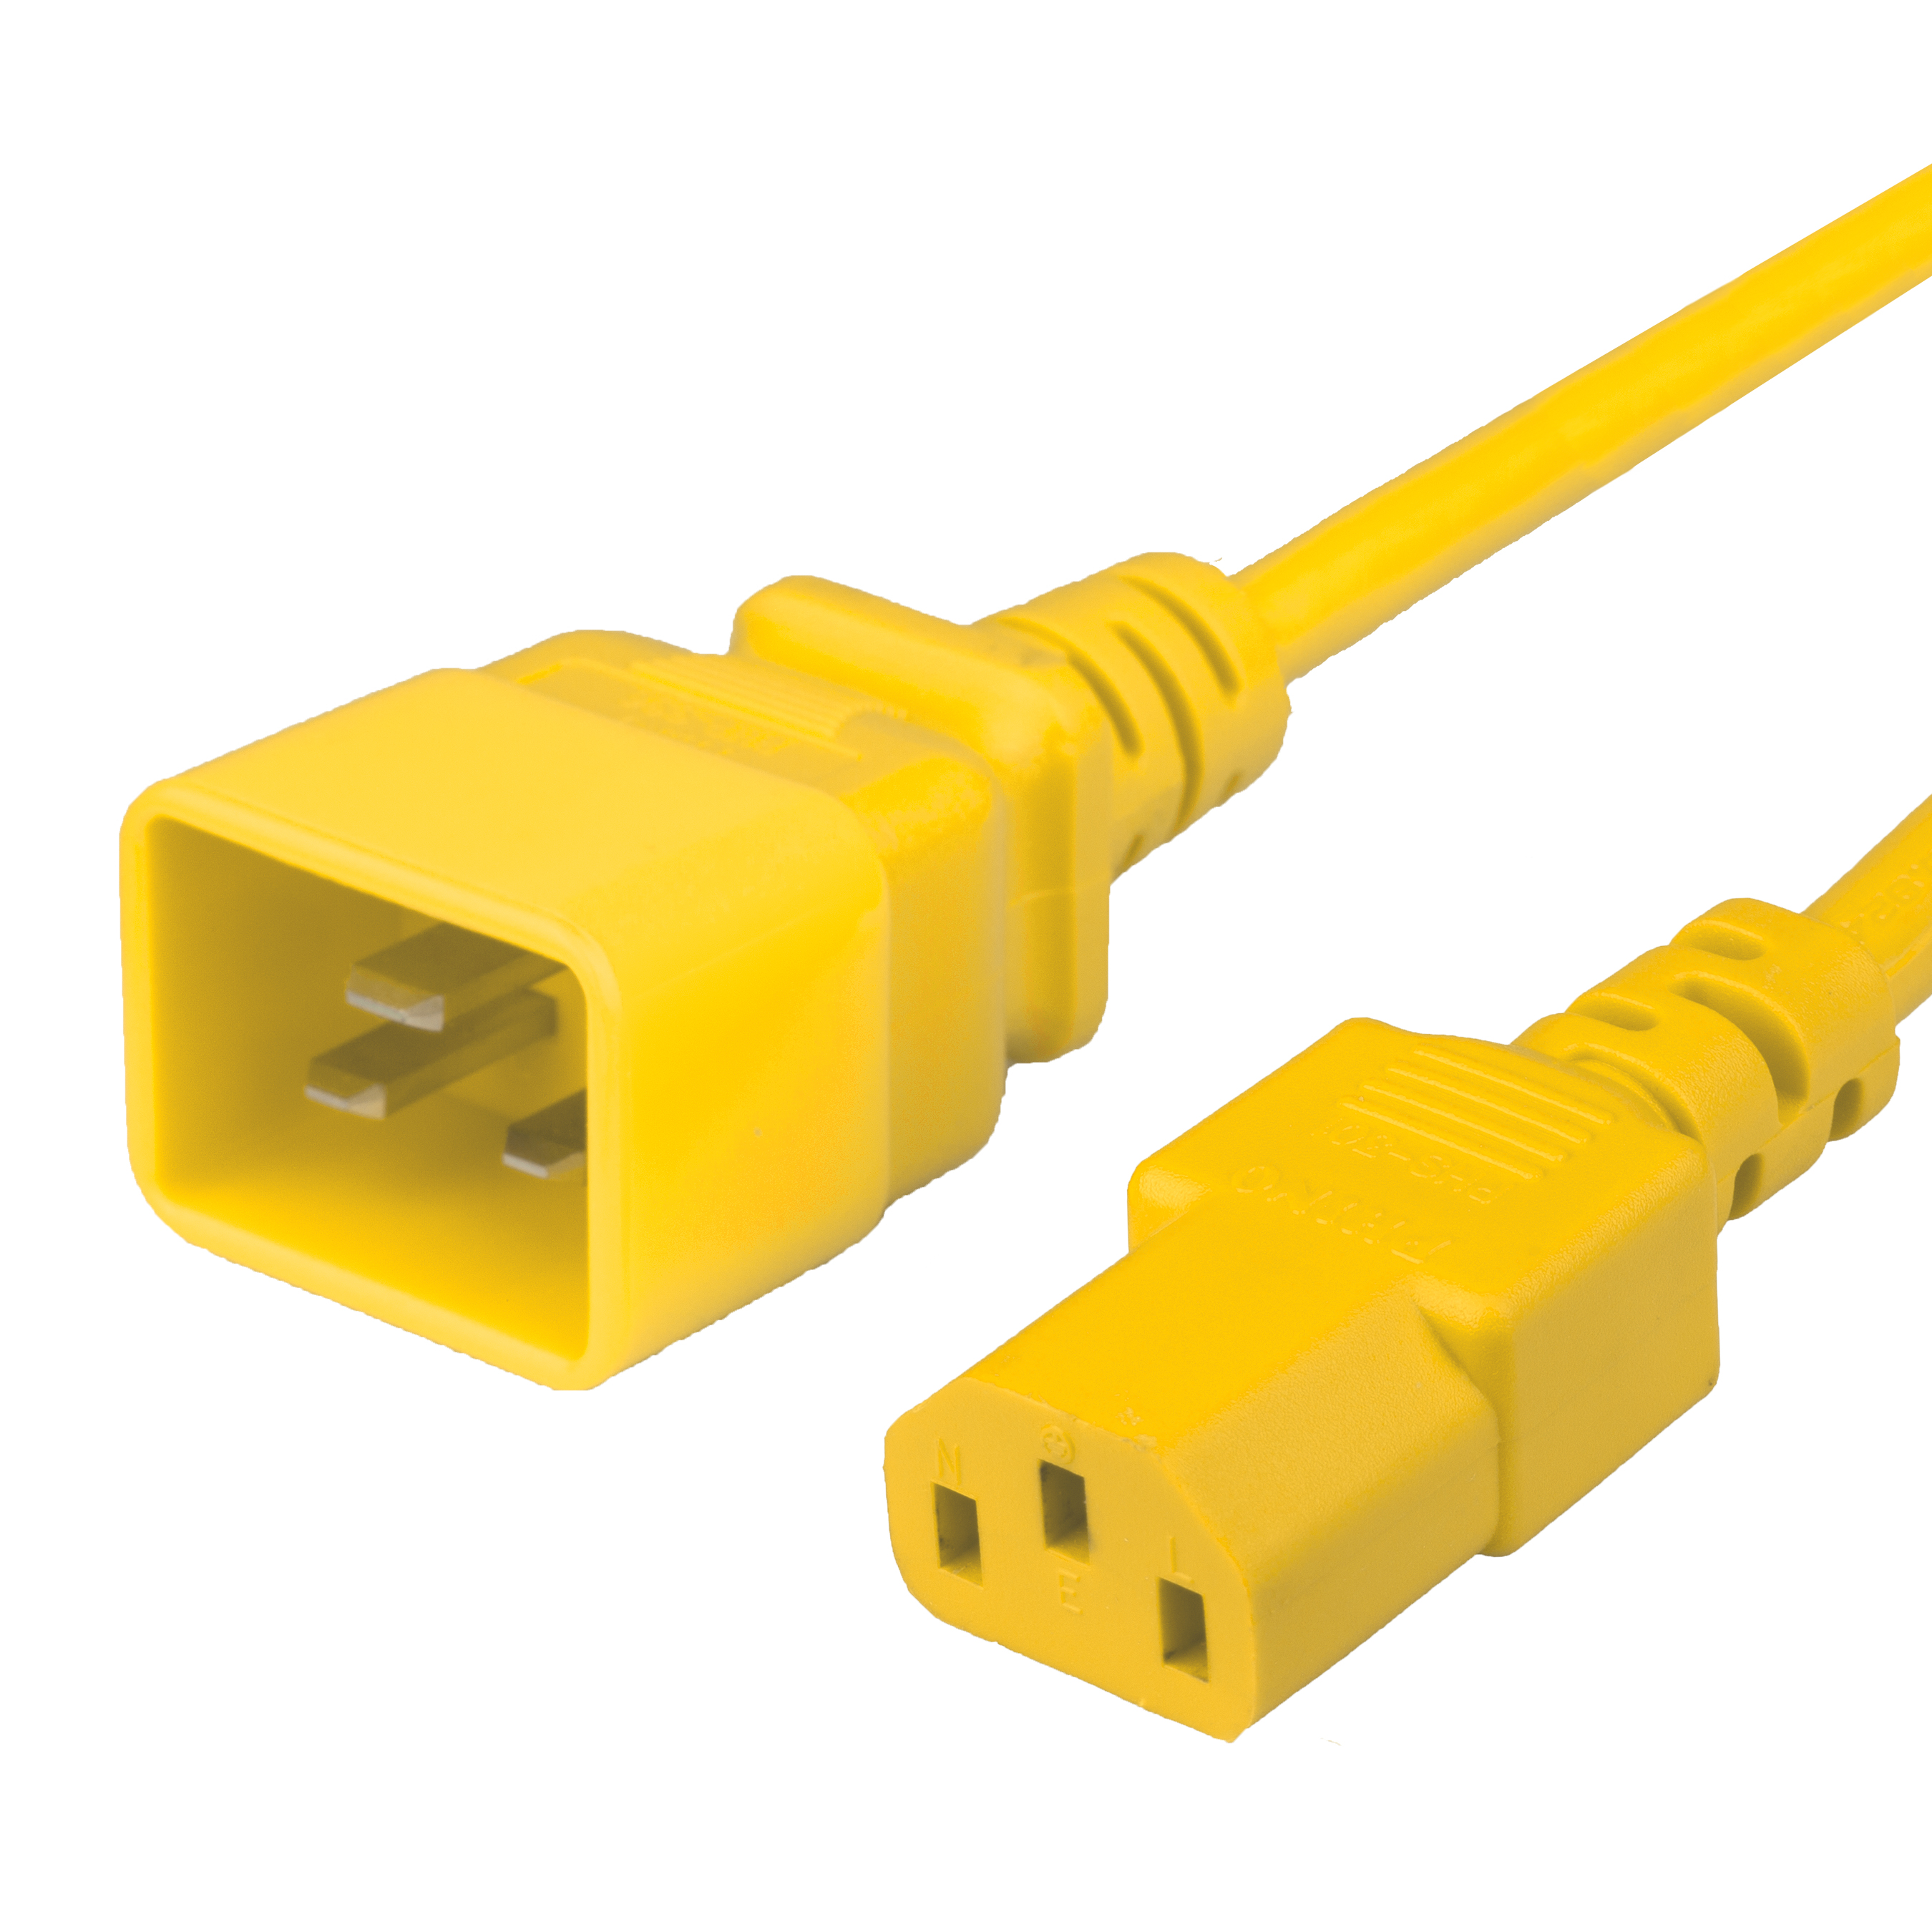 15FT C13 C20 15A 250V YELLOW Power Cord